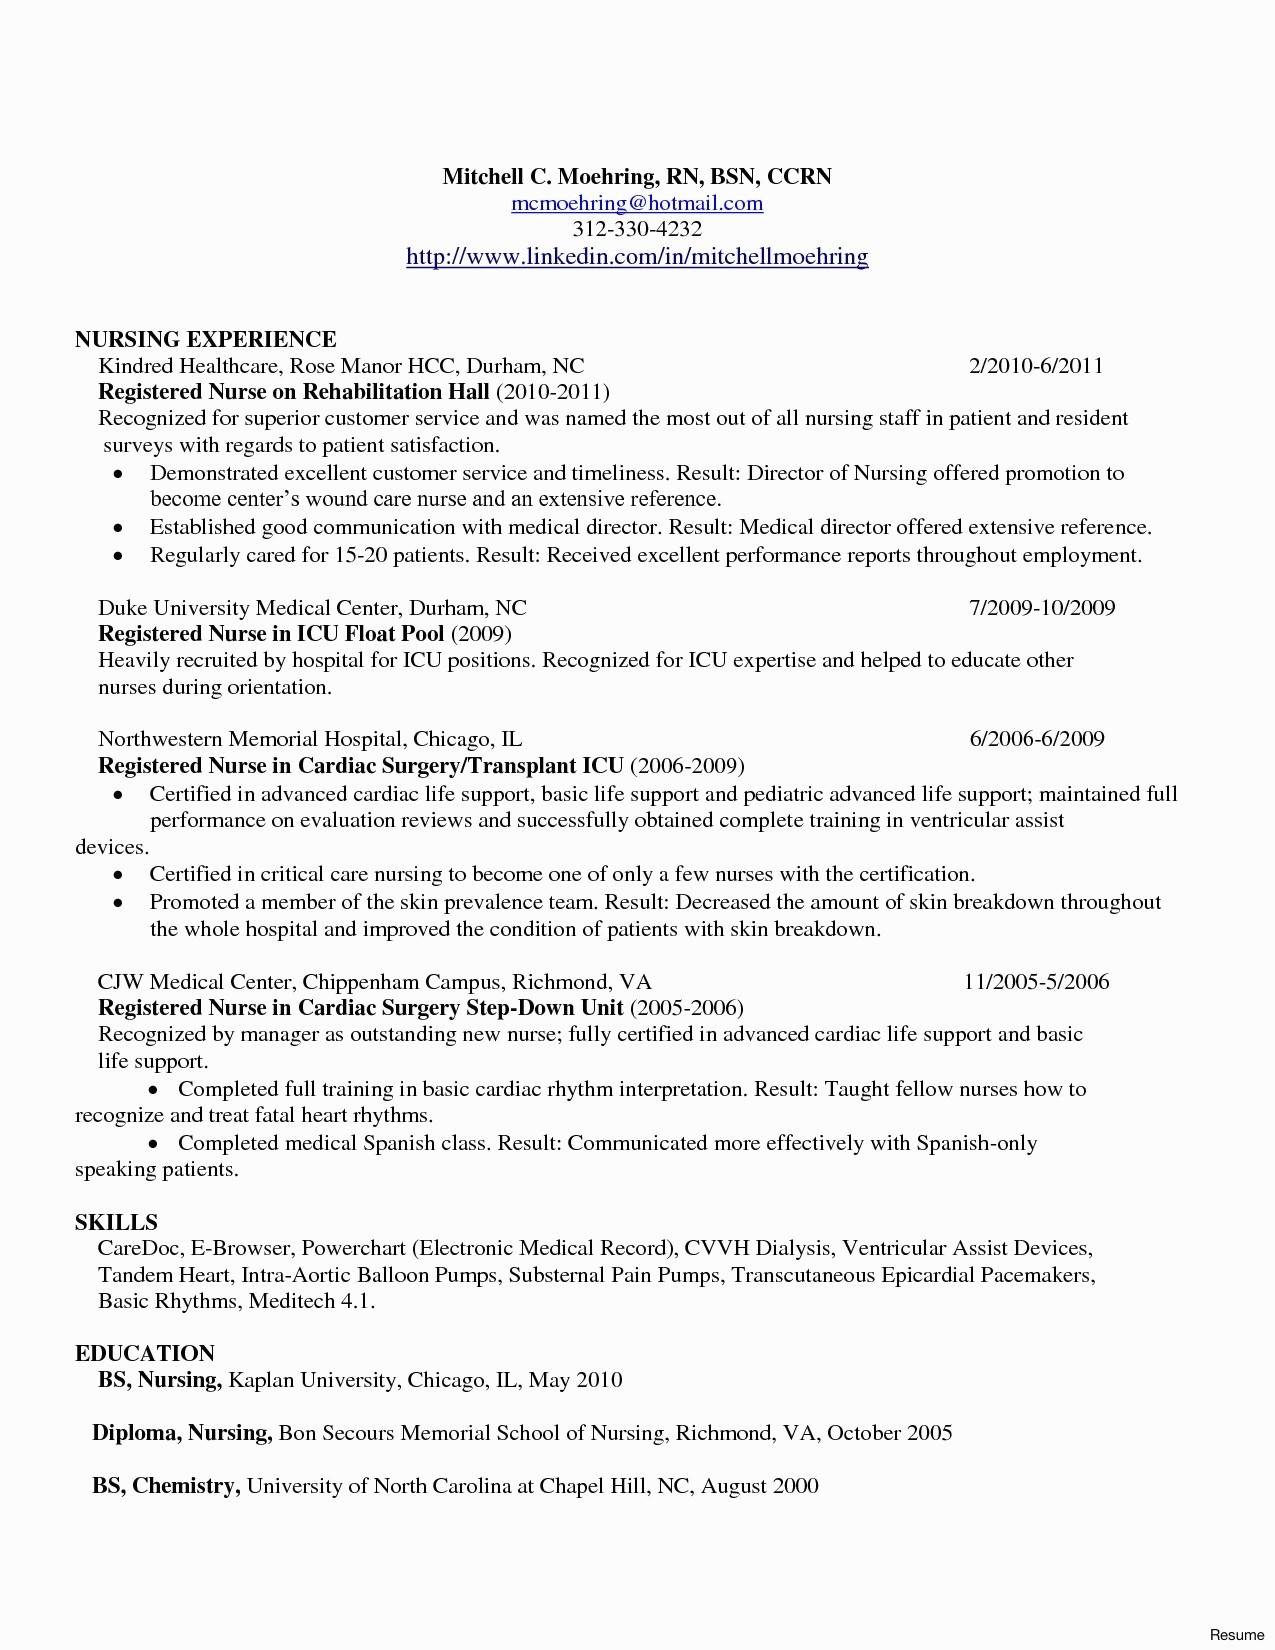 Lifeguard Responsibilities Resume - Resume Descriptions for Registered Nurses Resume Resume Examples